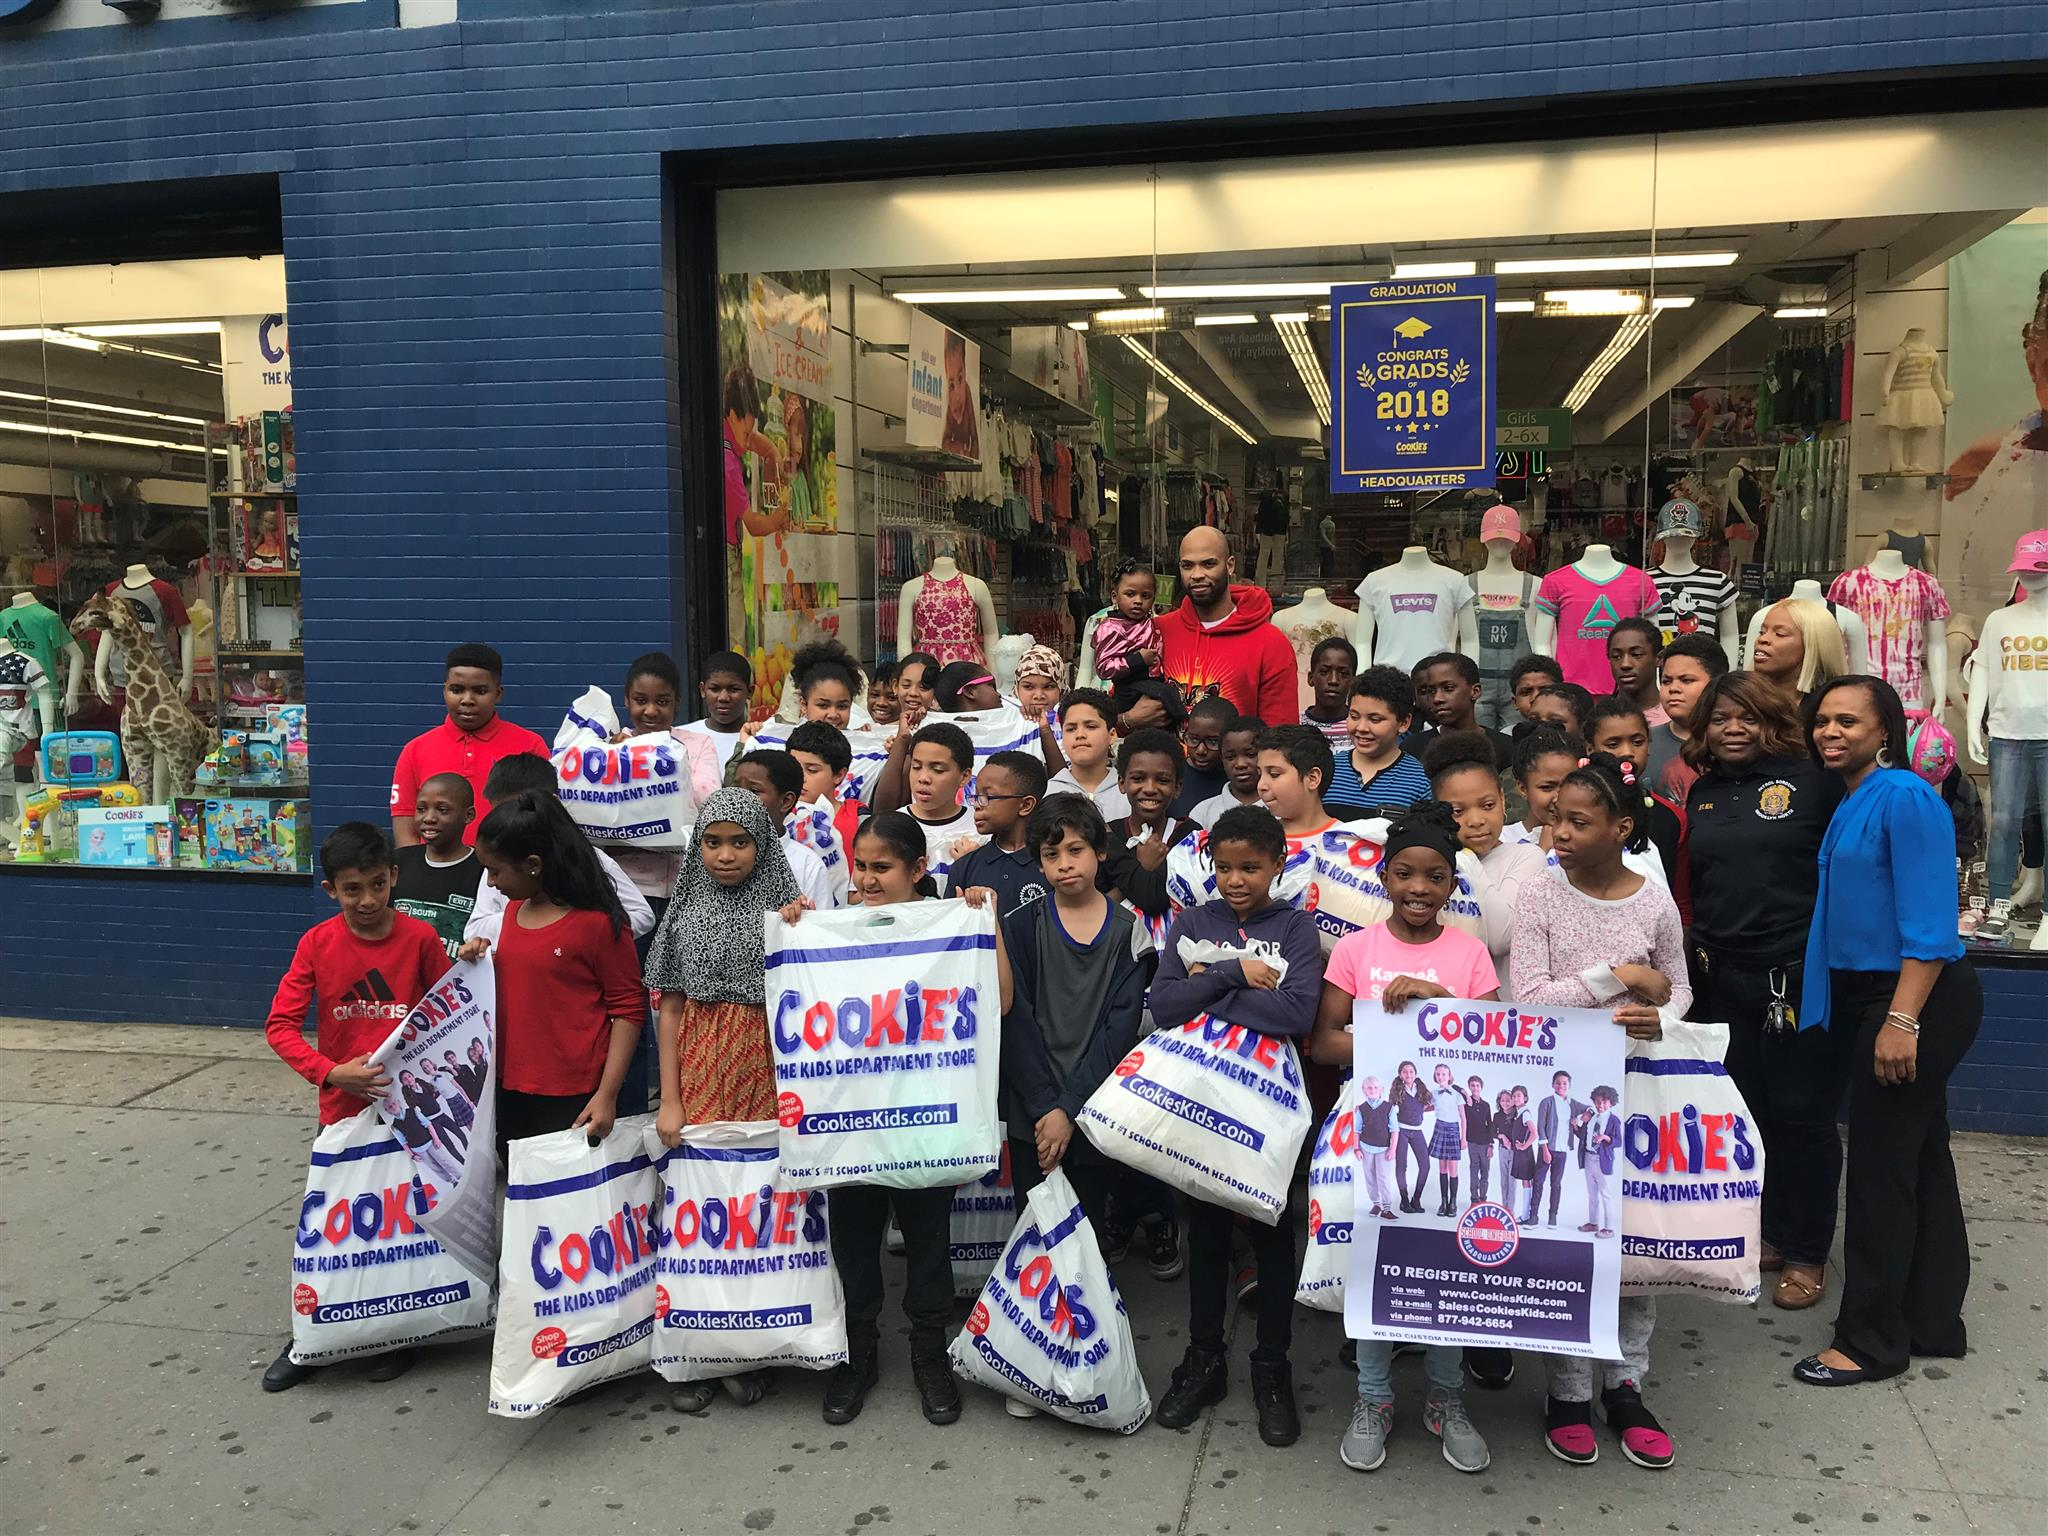 NBA Star Taj Gibson Surprises 5th Graders with Cookie's Shopping Spree